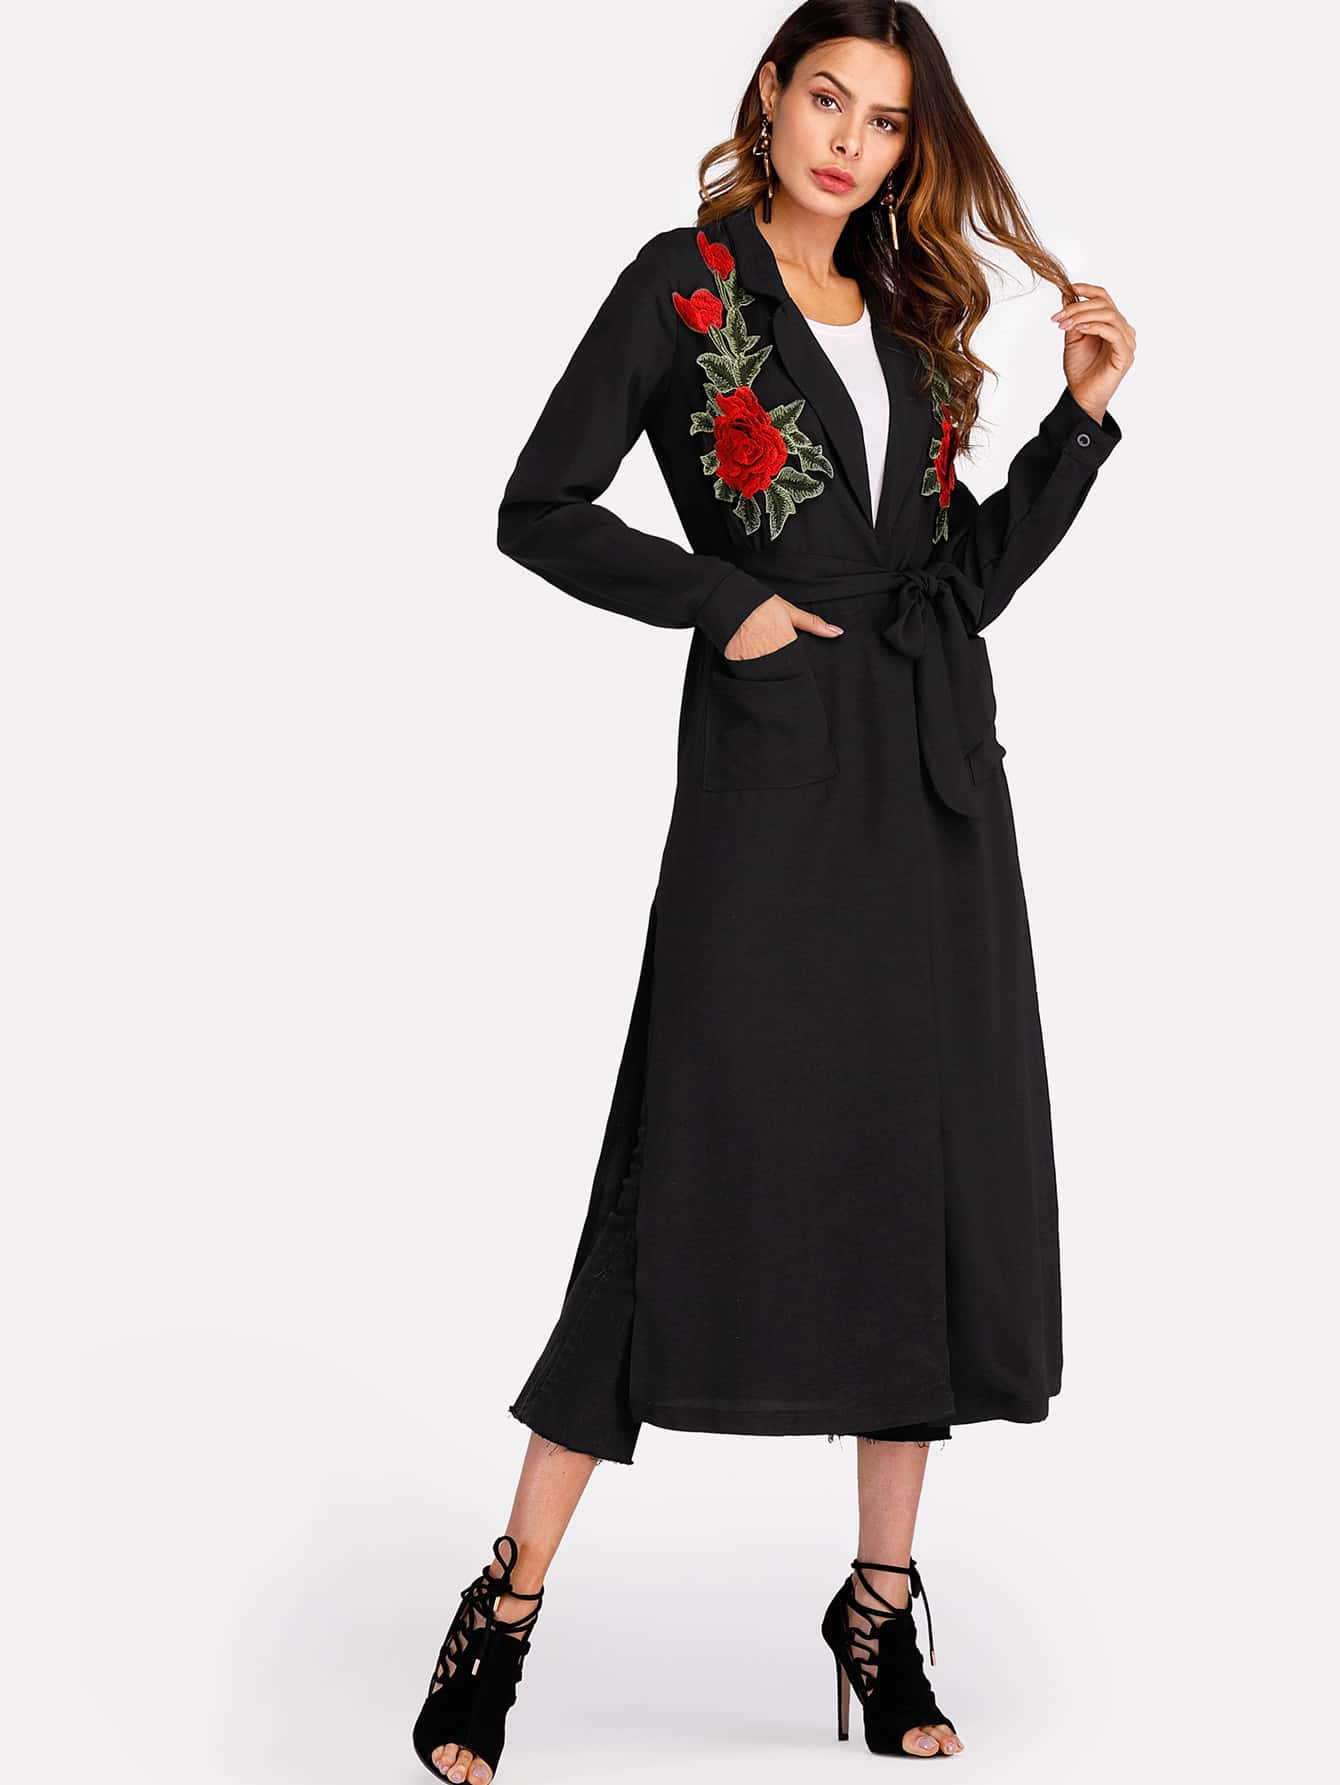 3D Embroidered Applique Slit Side Coat split side embroidered applique dress